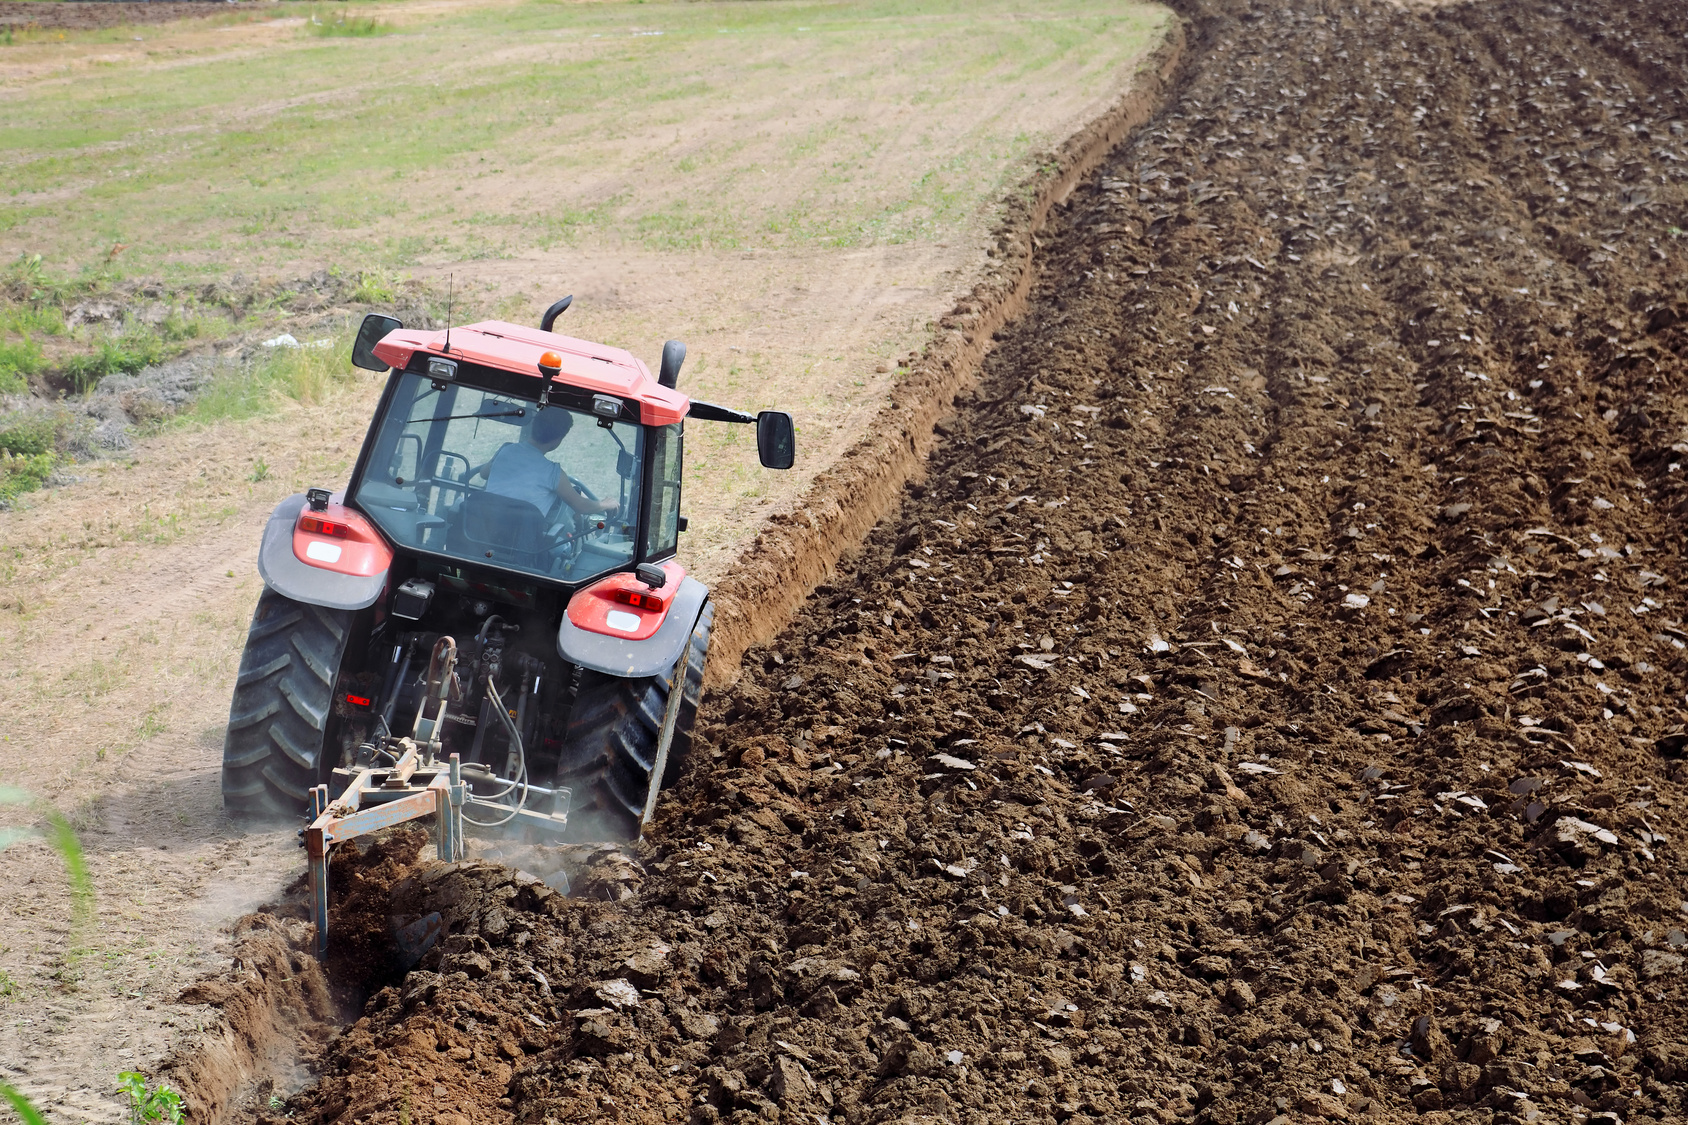 Before the invention of the tractor, plowing fields was done by hand or by using animal-drawn plows. As technology improves, so do our methods for farming.